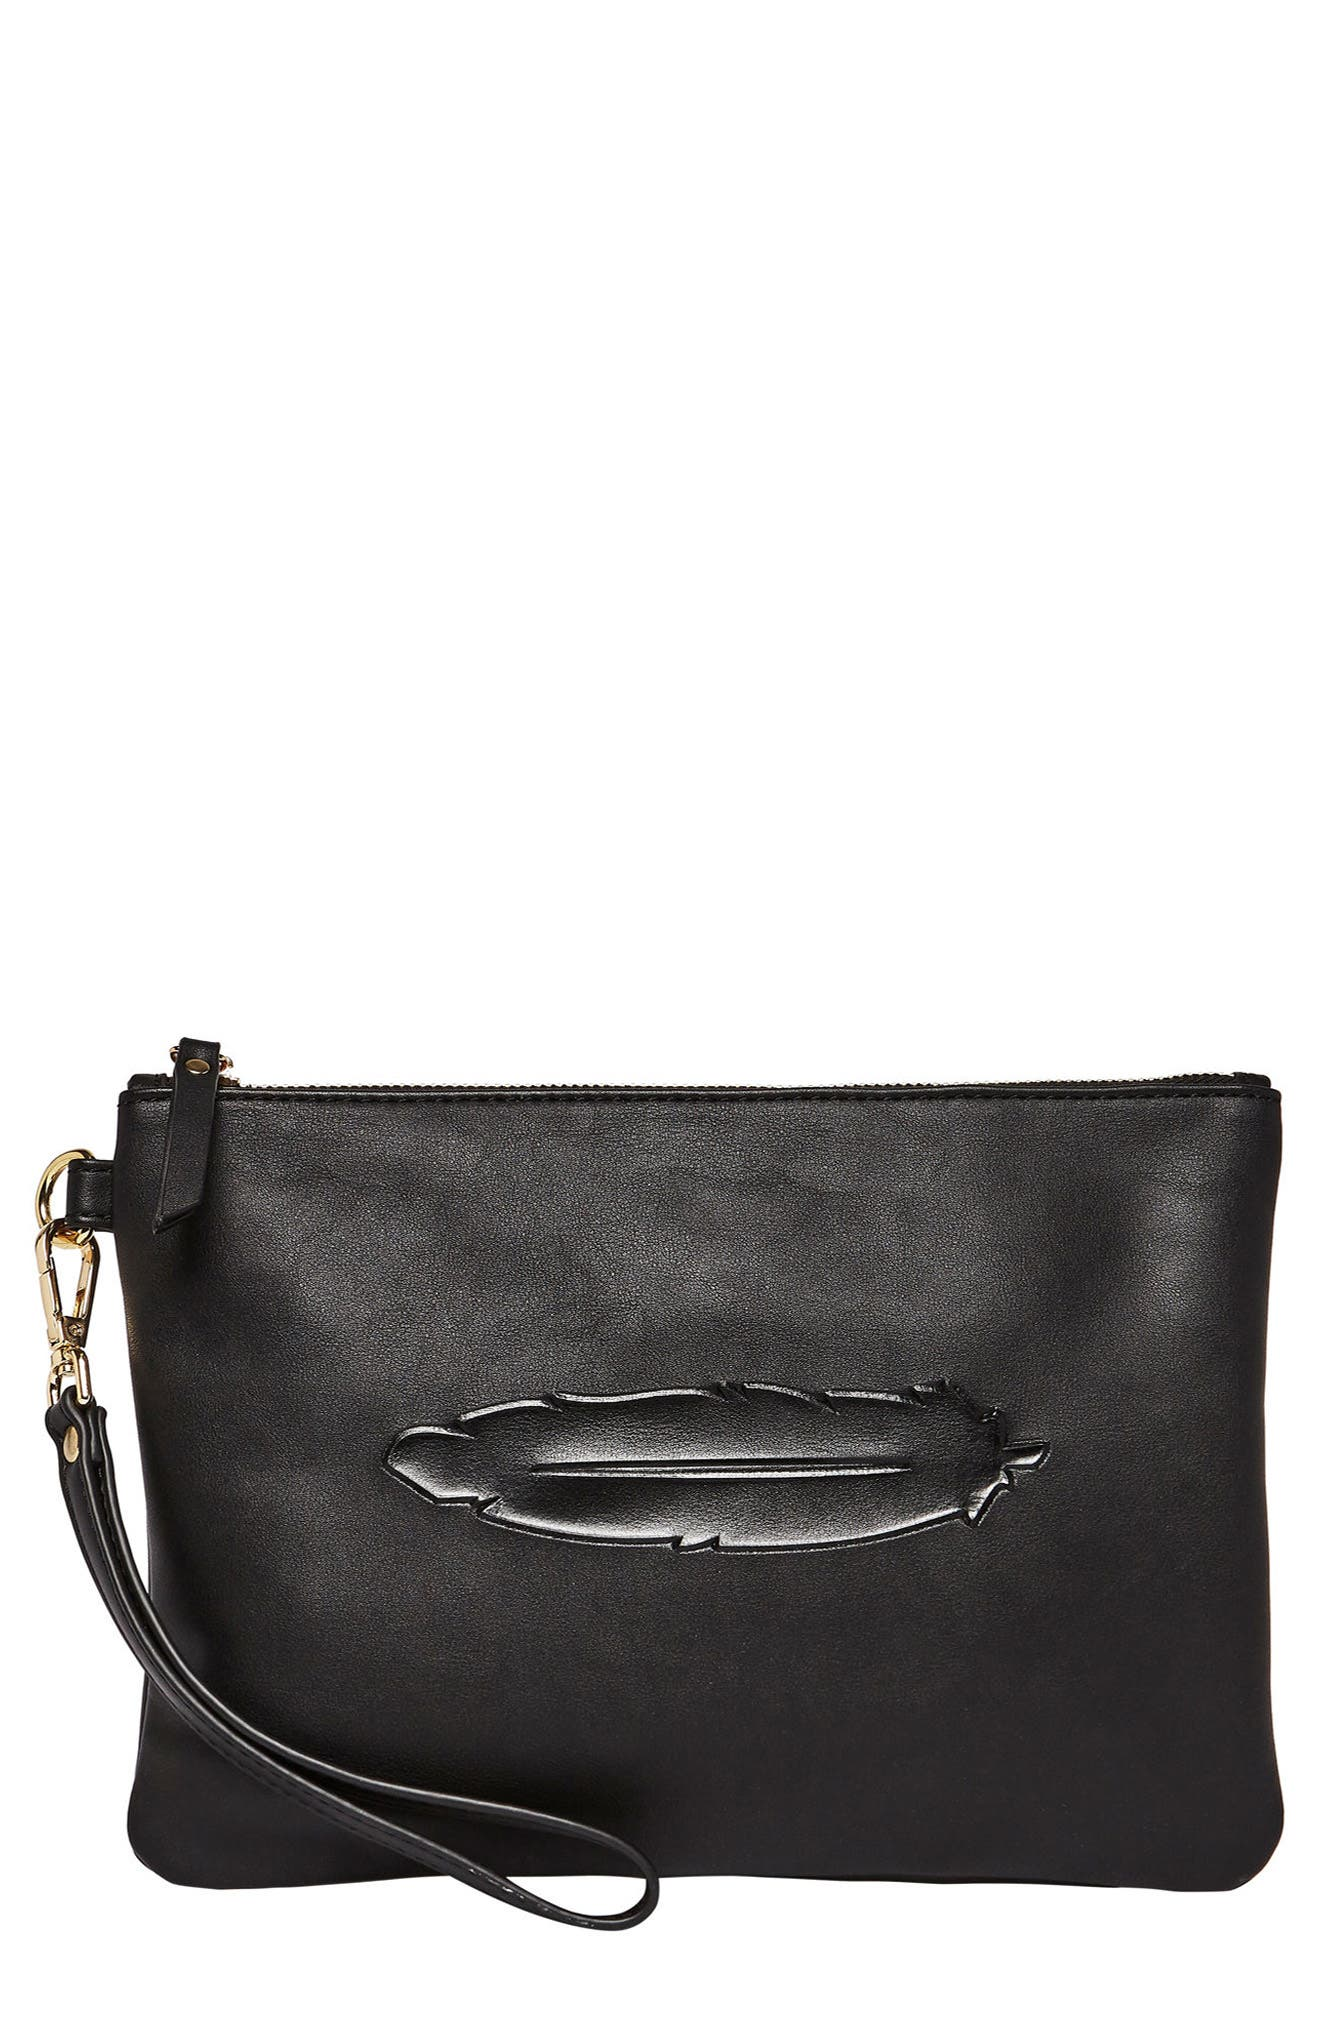 Clutch to Dream Vegan Leather Clutch,                         Main,                         color, Black